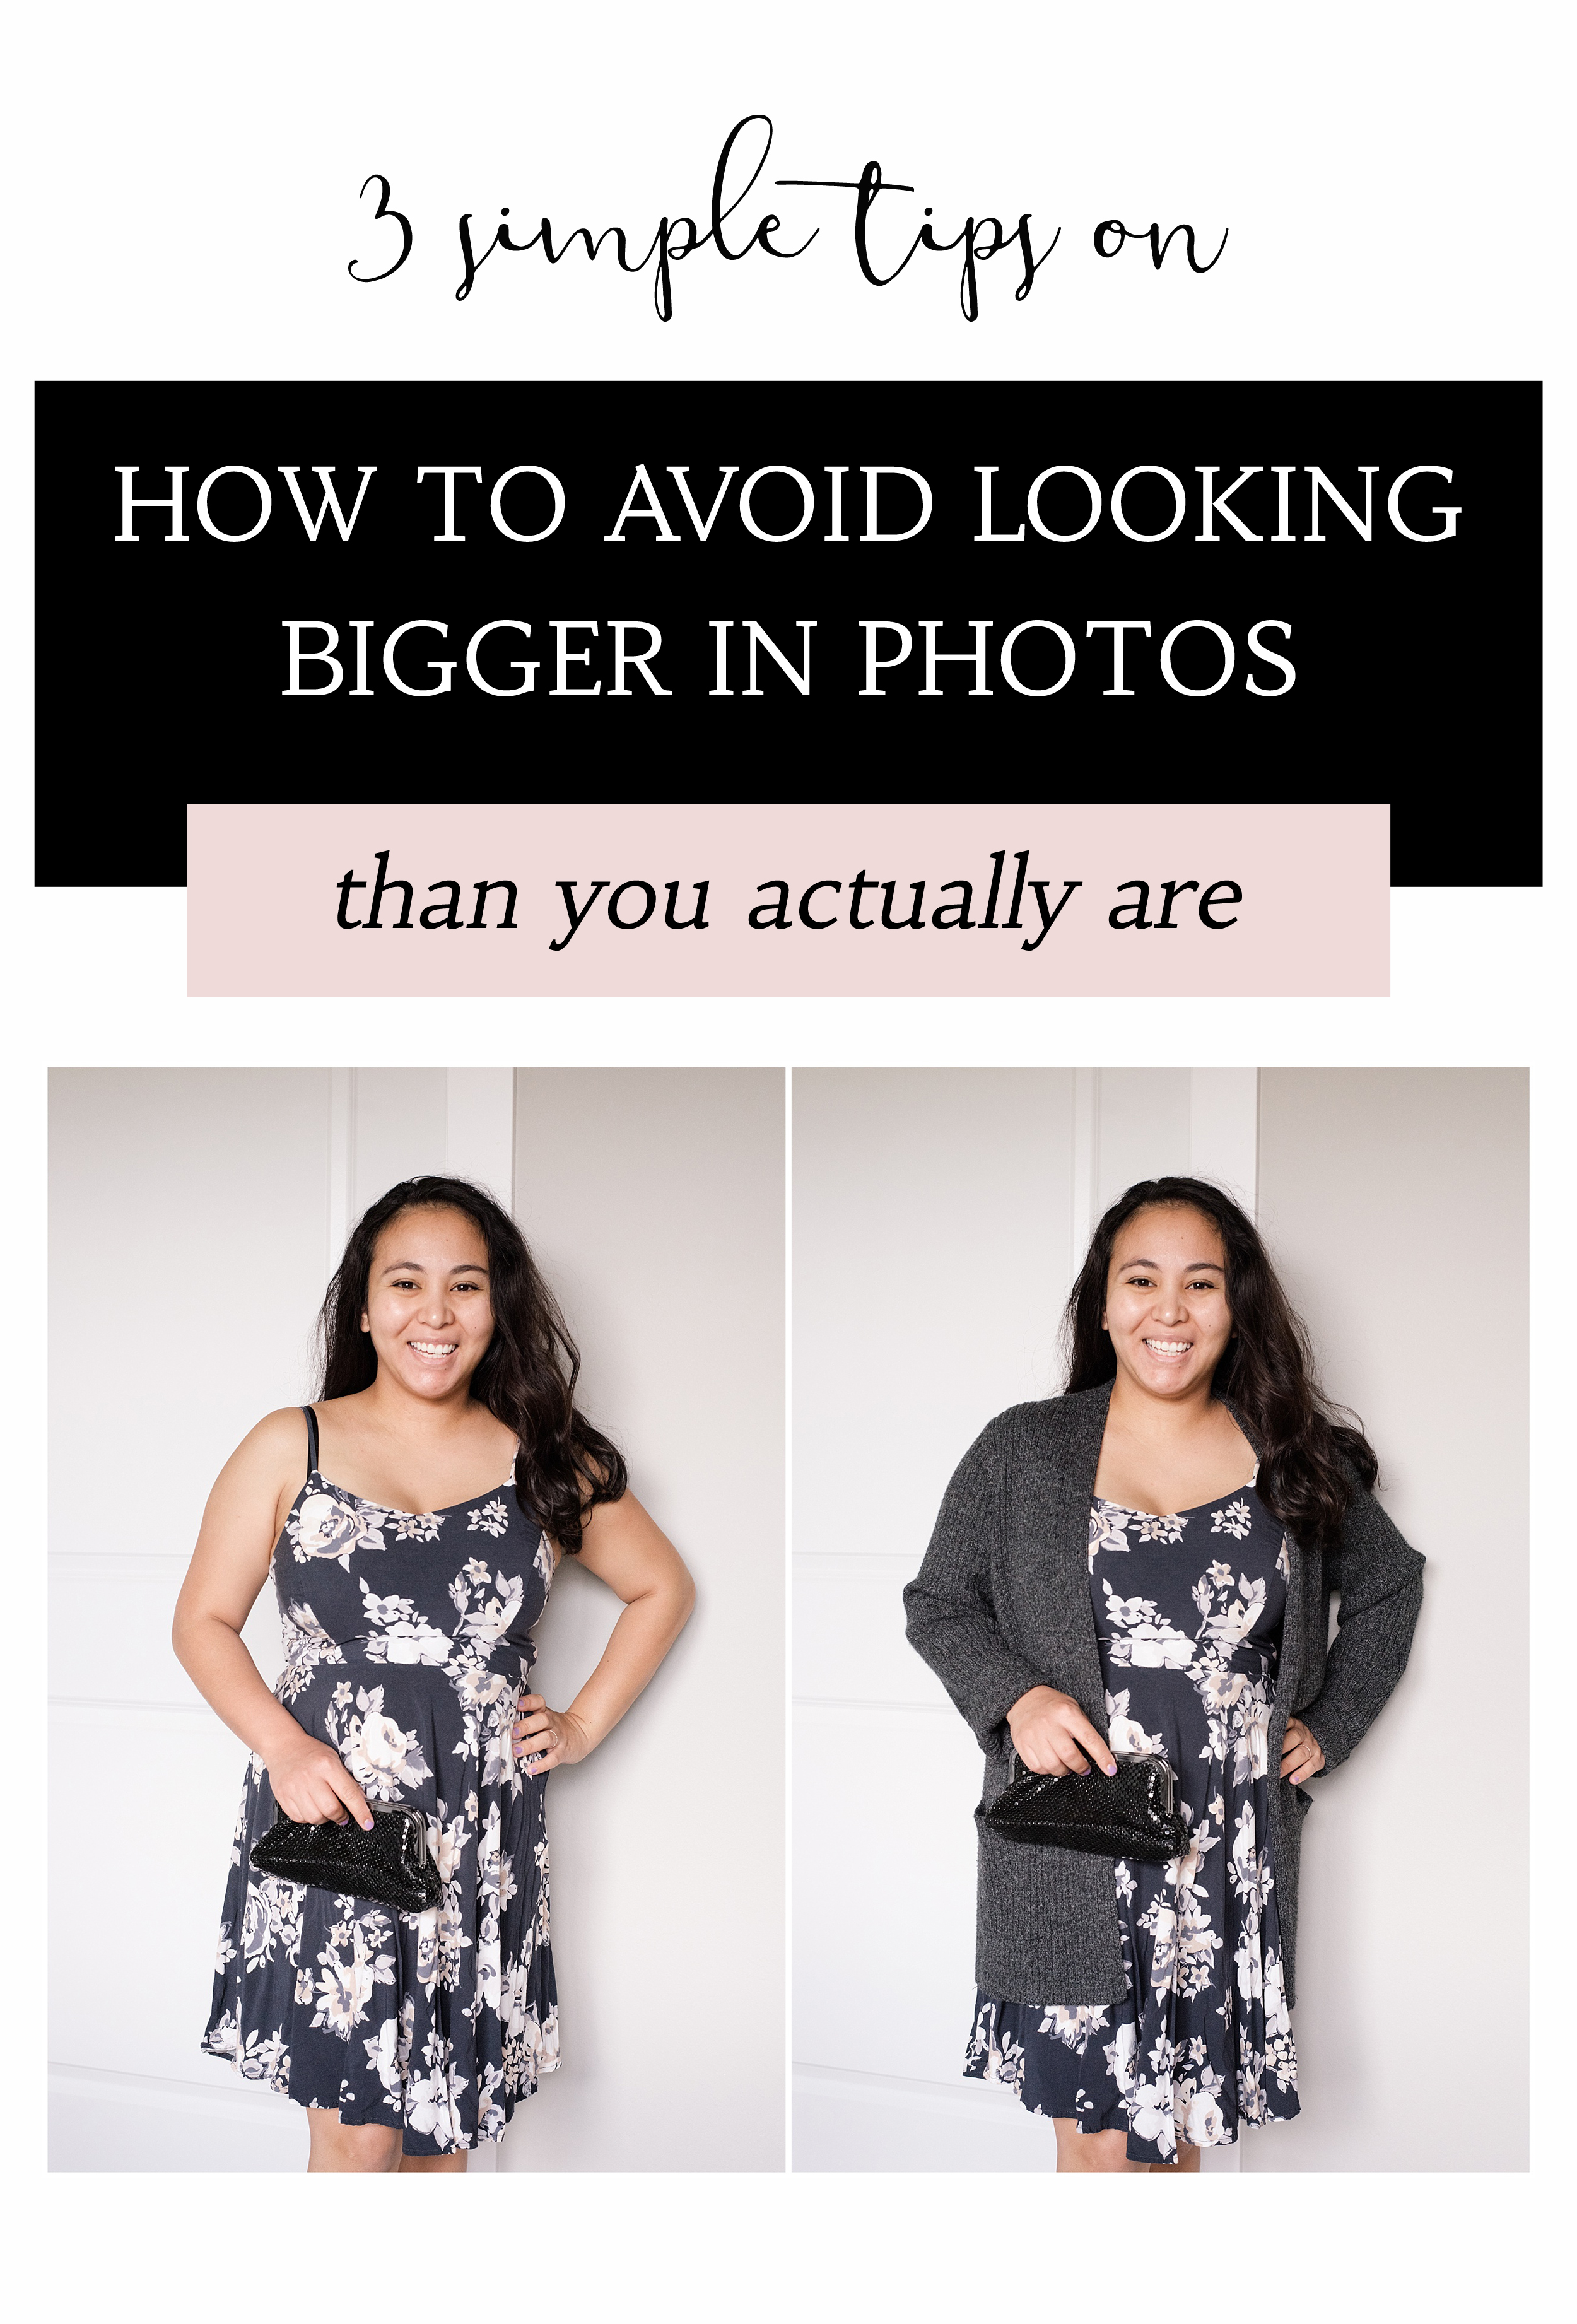 How_to_avoid_looking_bigger_in_photos_than_you_actually_are_Pinterest.jpg